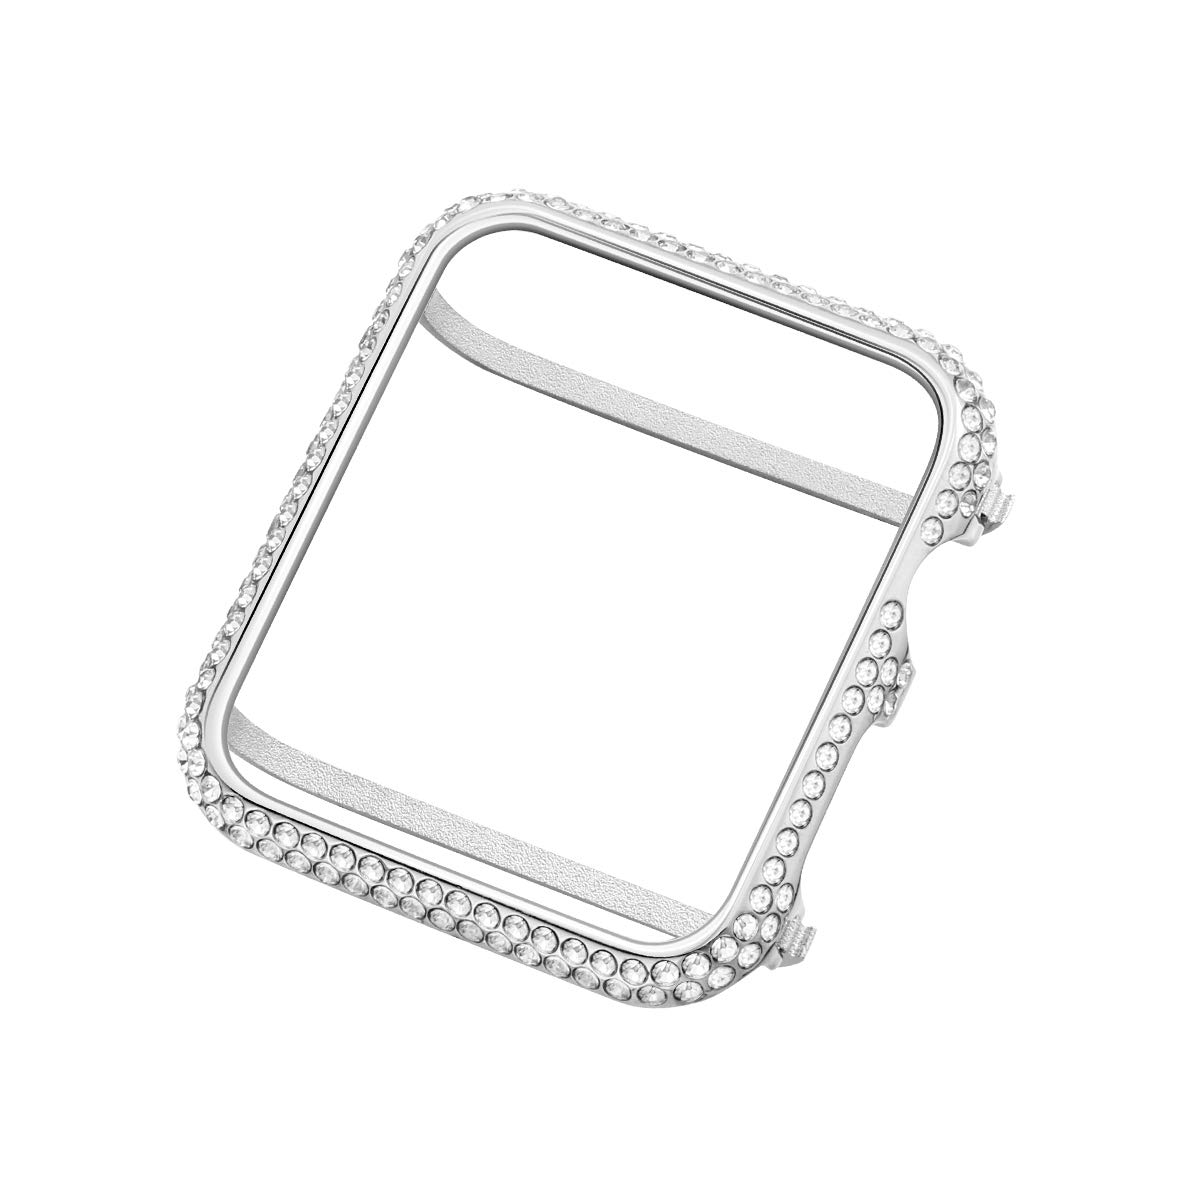 UKCOCO Compatible Apple Watch 38mm Diamond Case, Aluminum iWatch Bezel Metal Cover Crystal Rhinestone Protective Protector Cover for iWatch Series 1/2/3 Sport and Edition (38mm Silver)